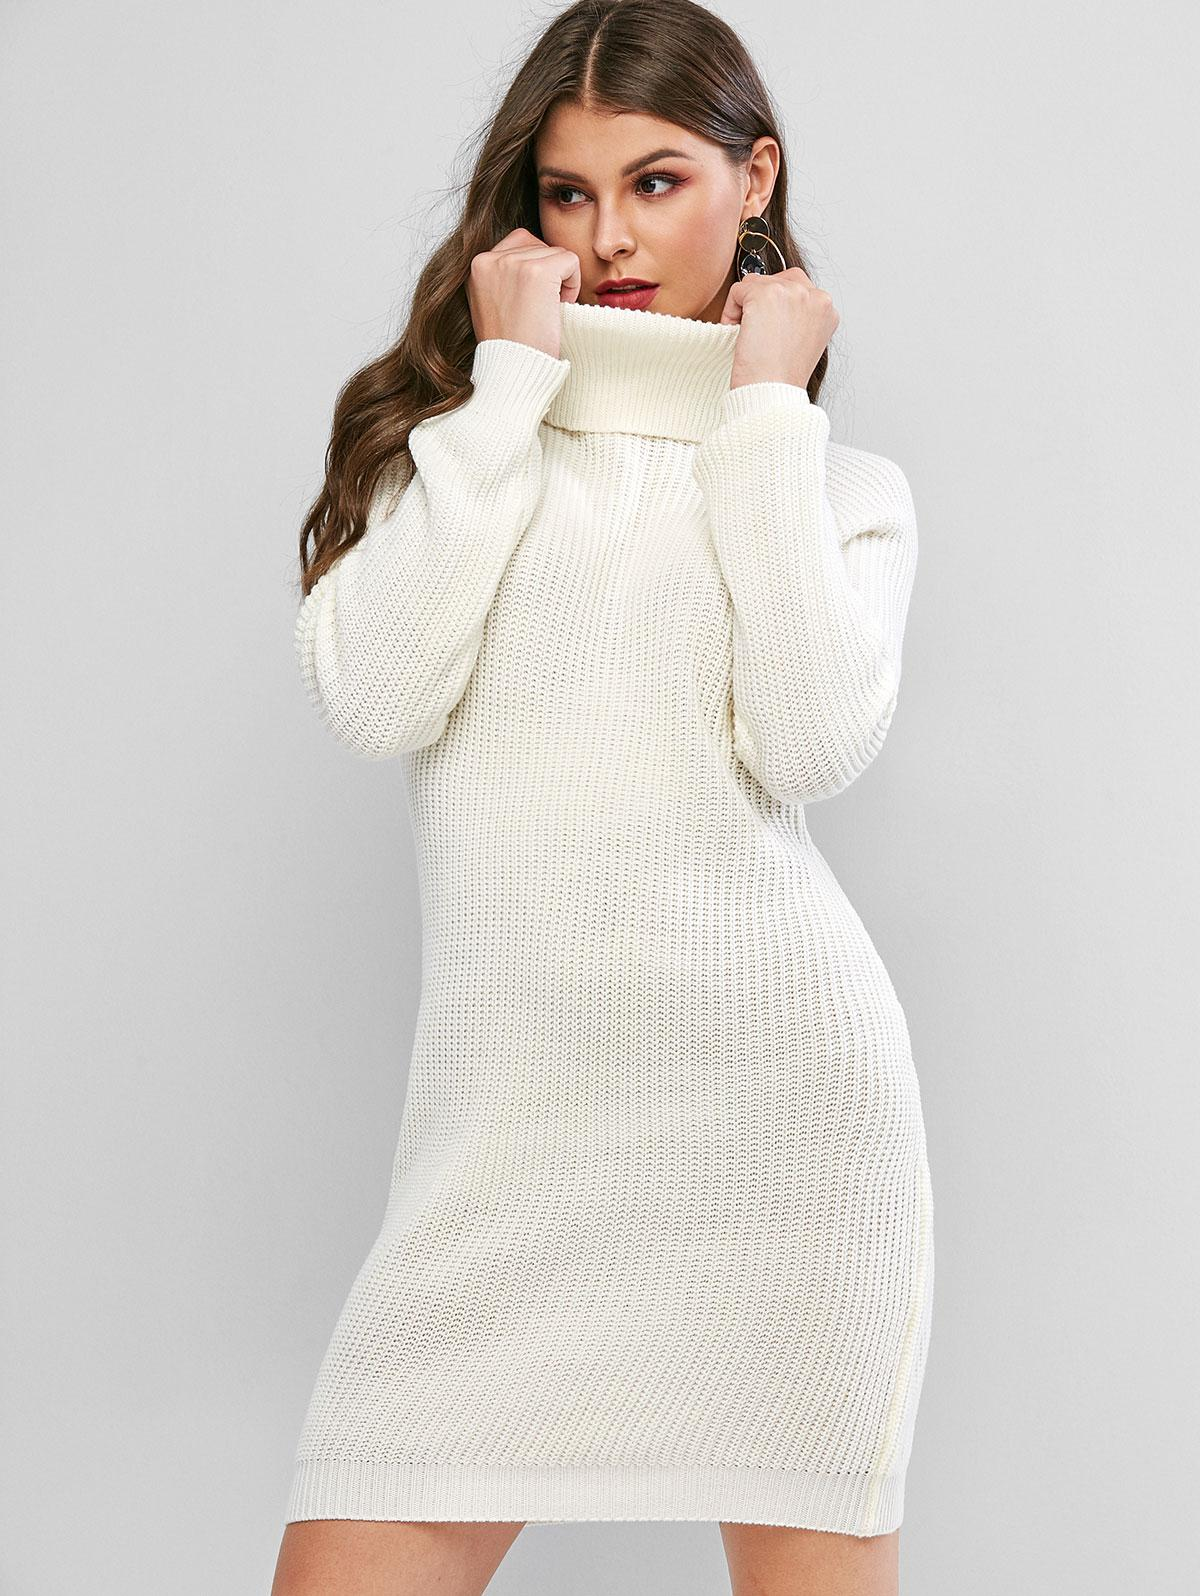 Turtleneck Raglan Sleeve Mini Sweater Dress